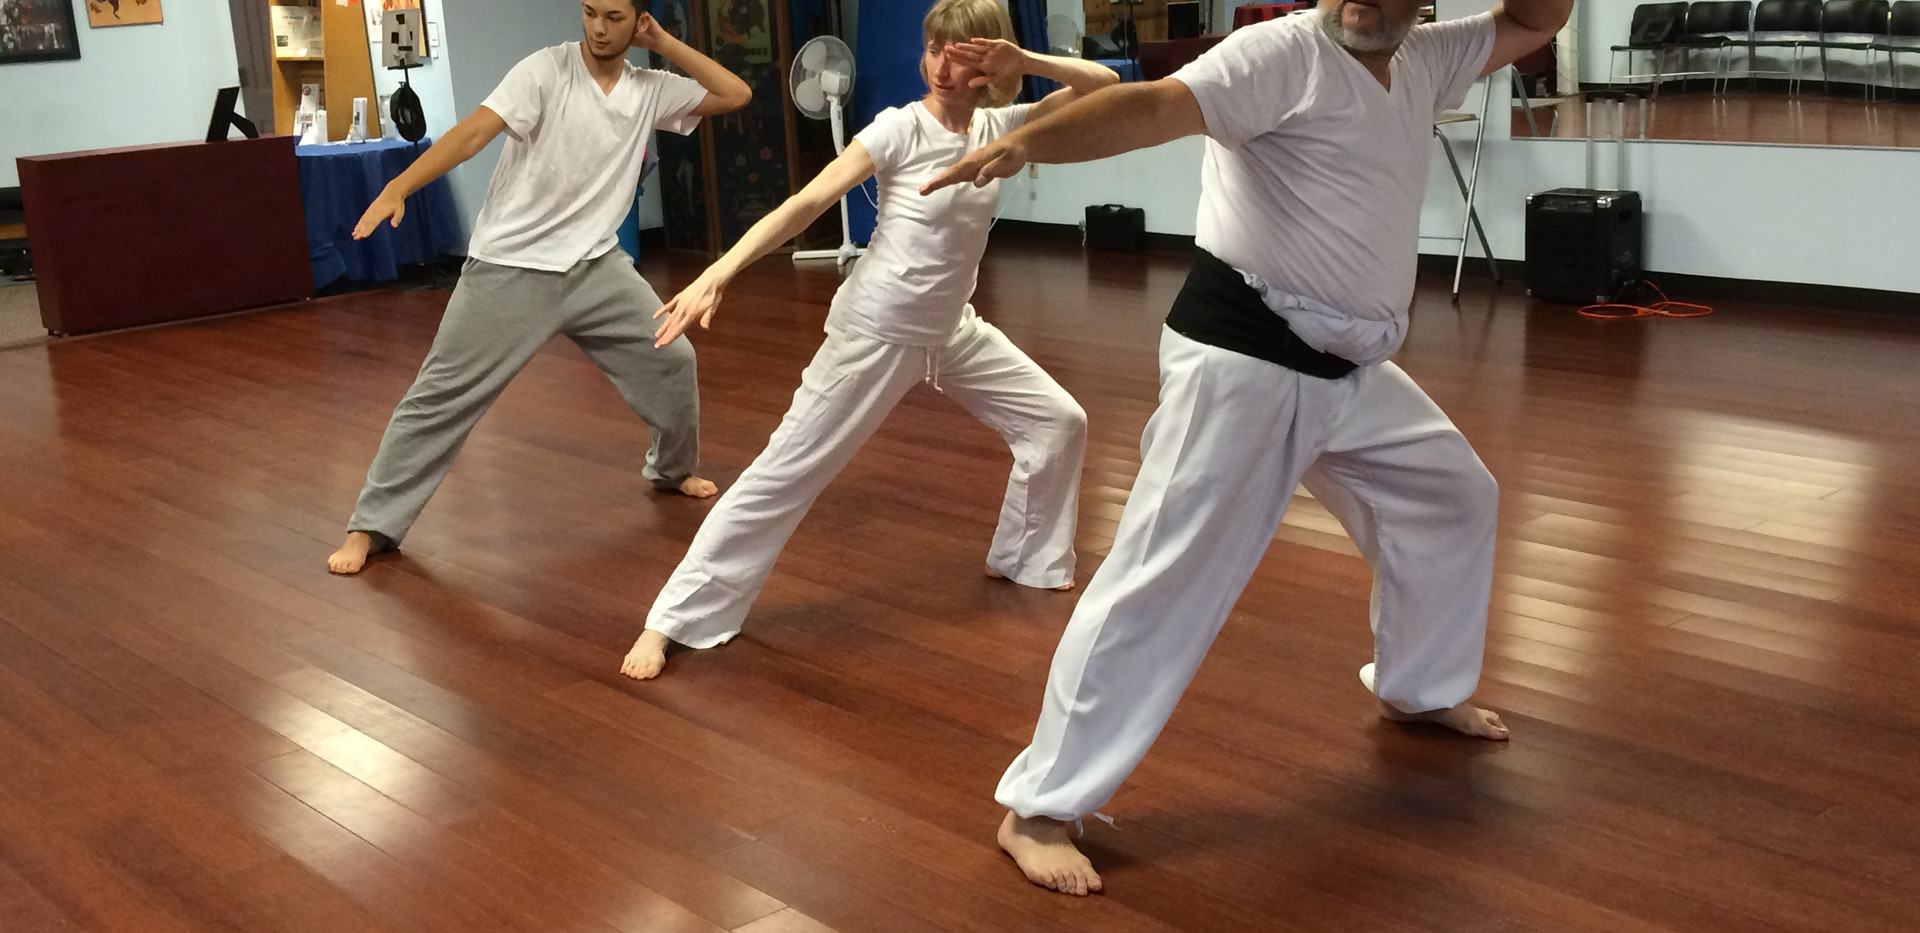 Kung Fu class pic 2